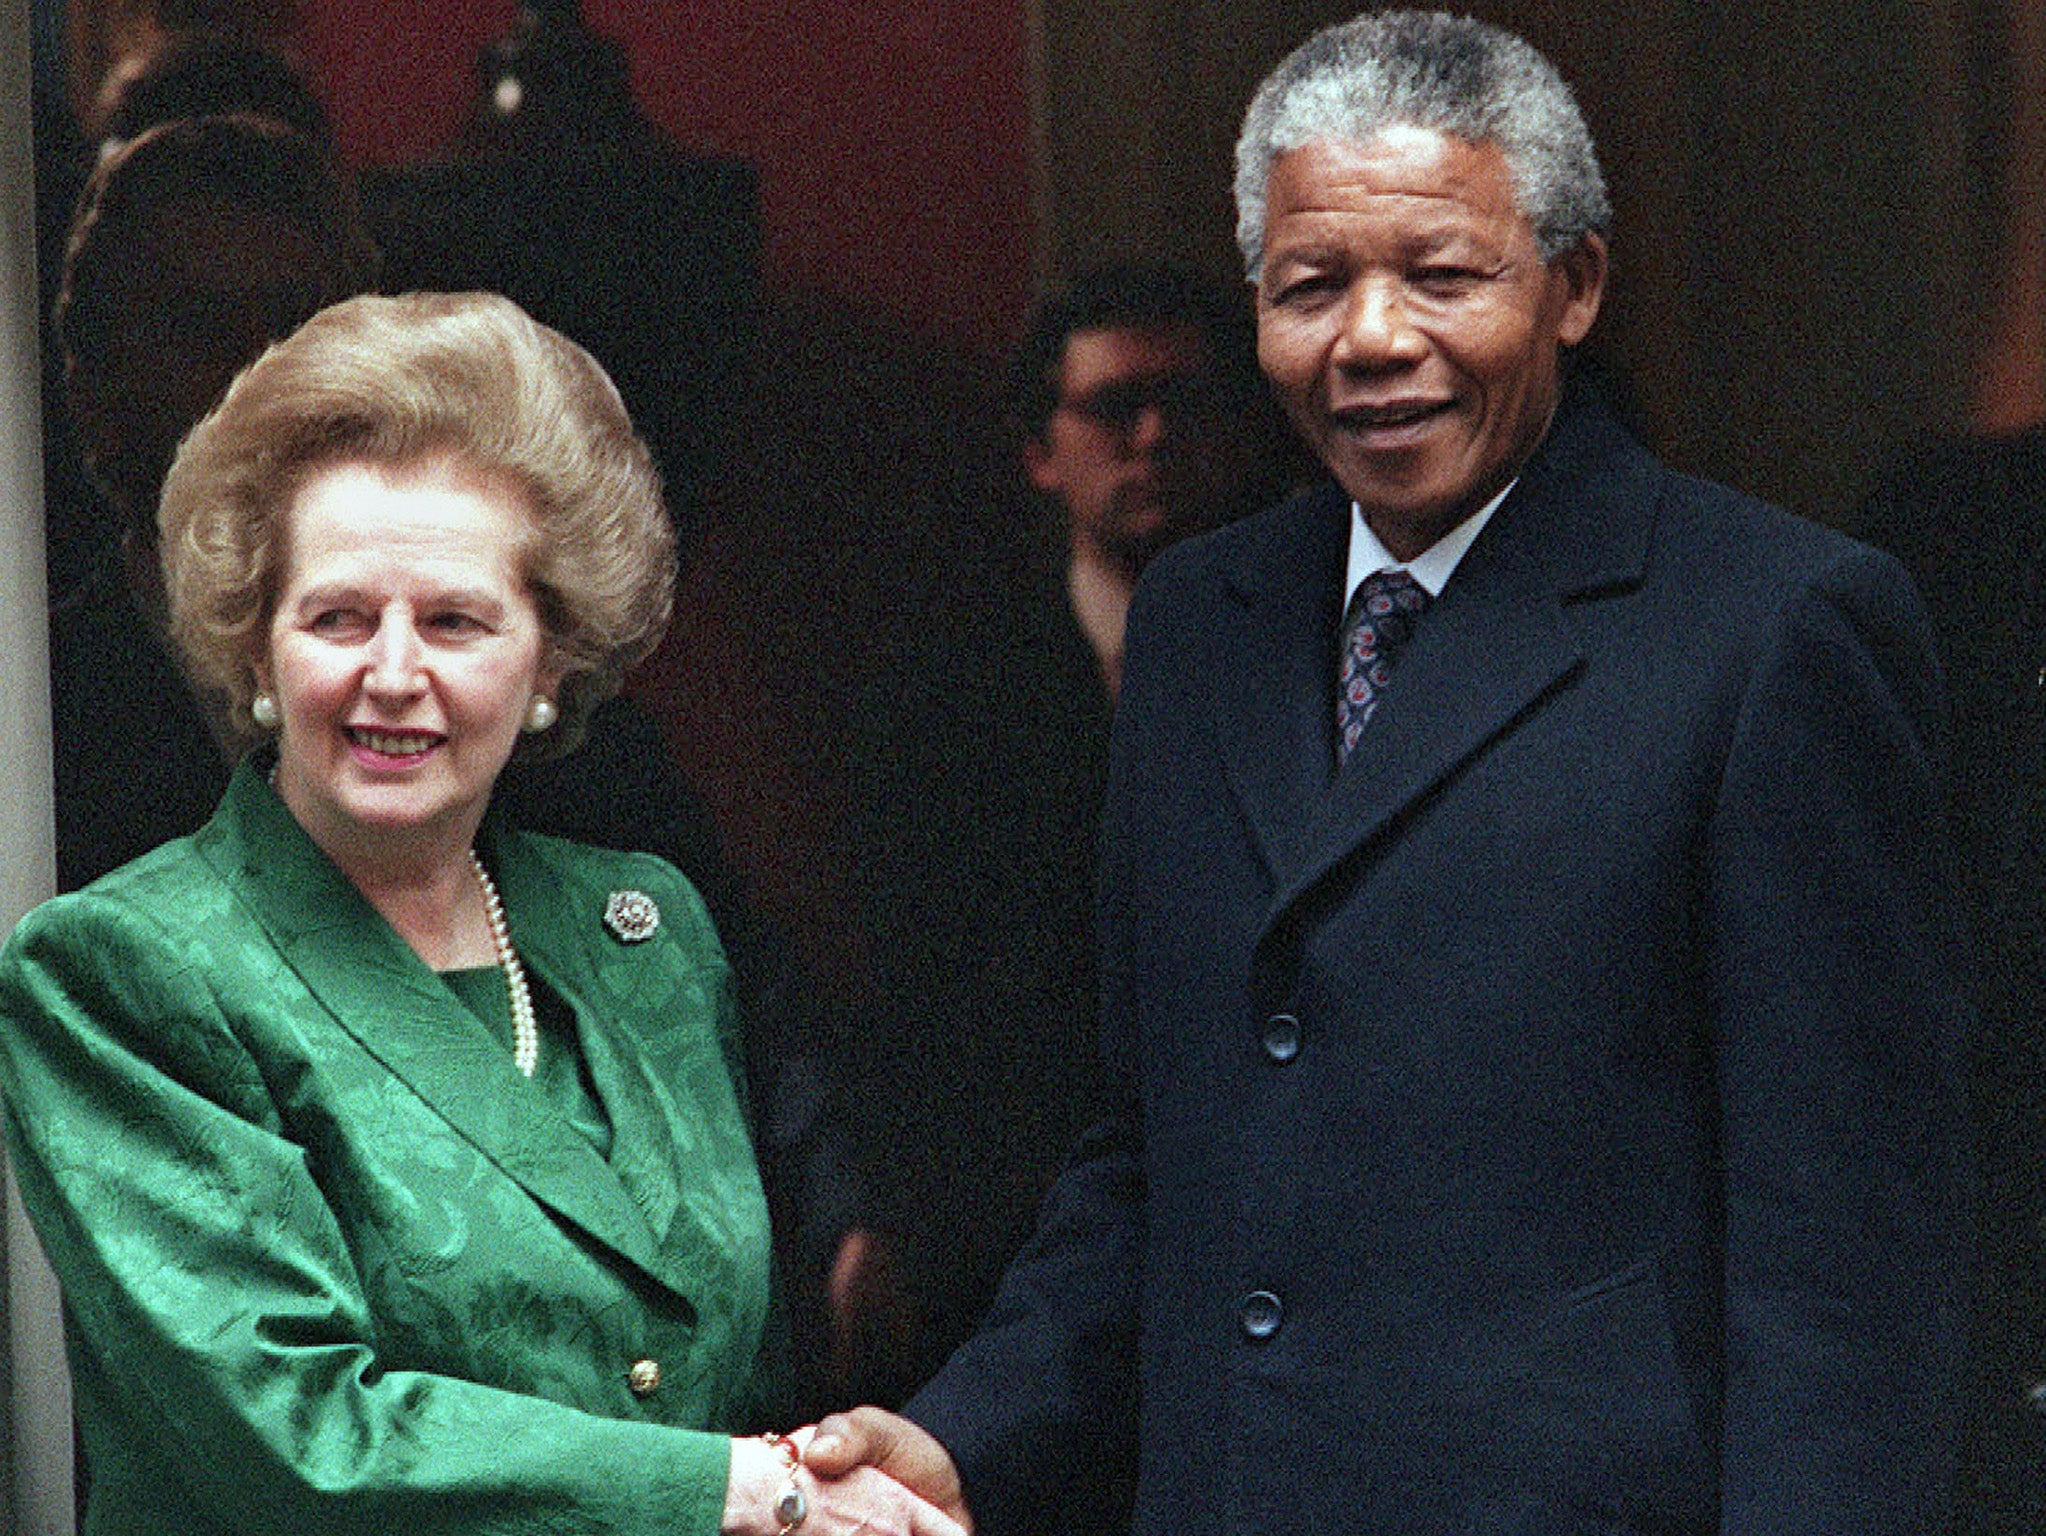 Margaret Thatcher's government tried to prevent Nelson Mandela being honoured by British university, documents reveal